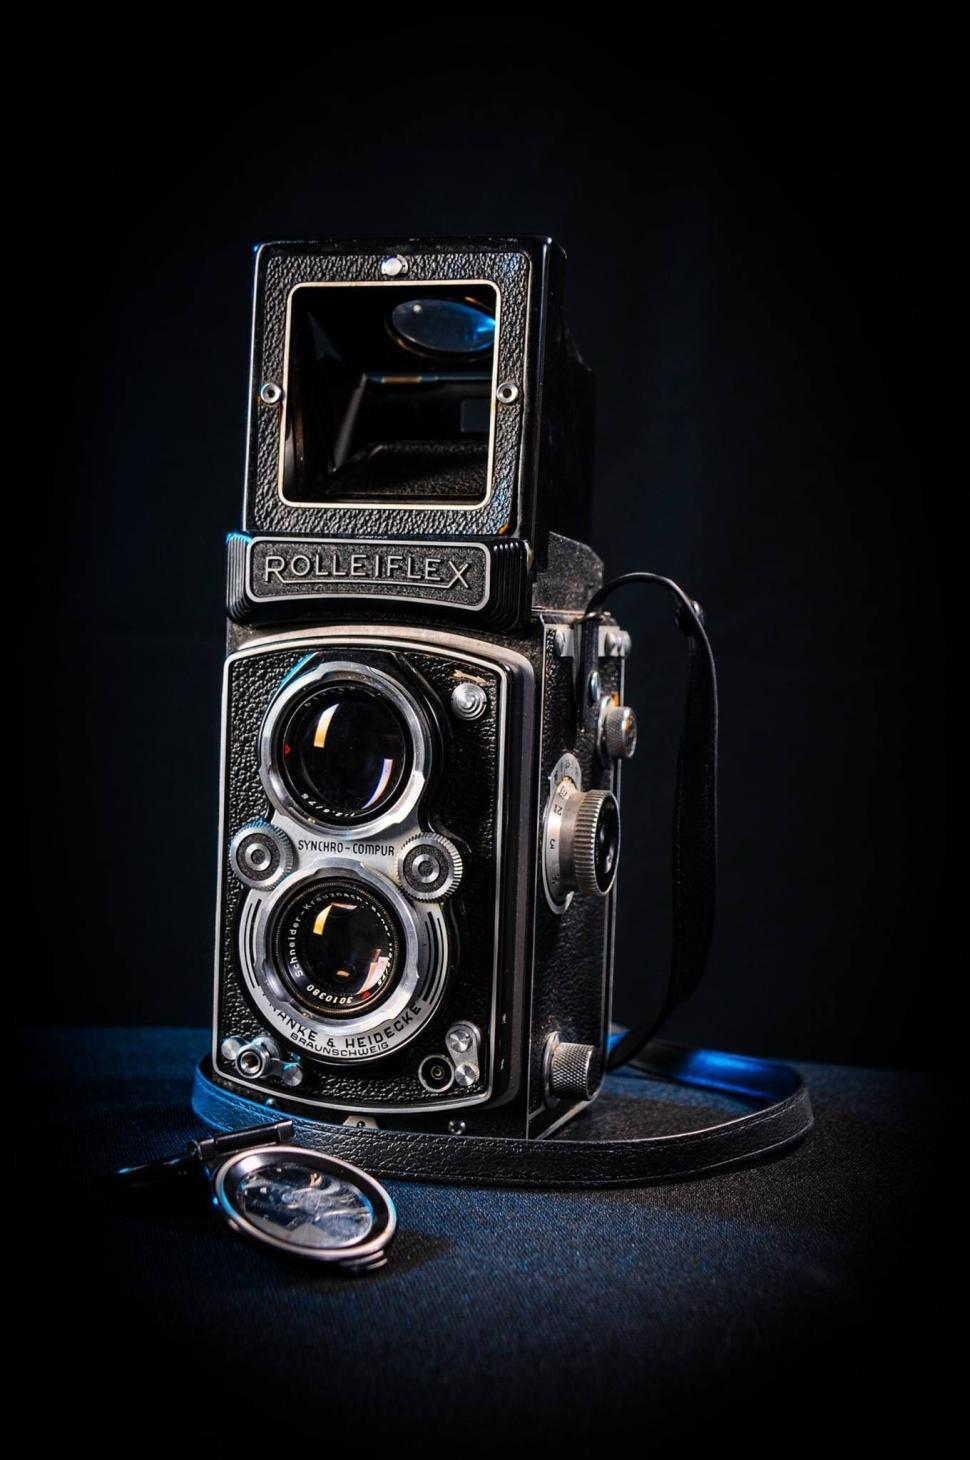 Download Free Stock HD Photo of Rolleiflex camera with range finder  Online